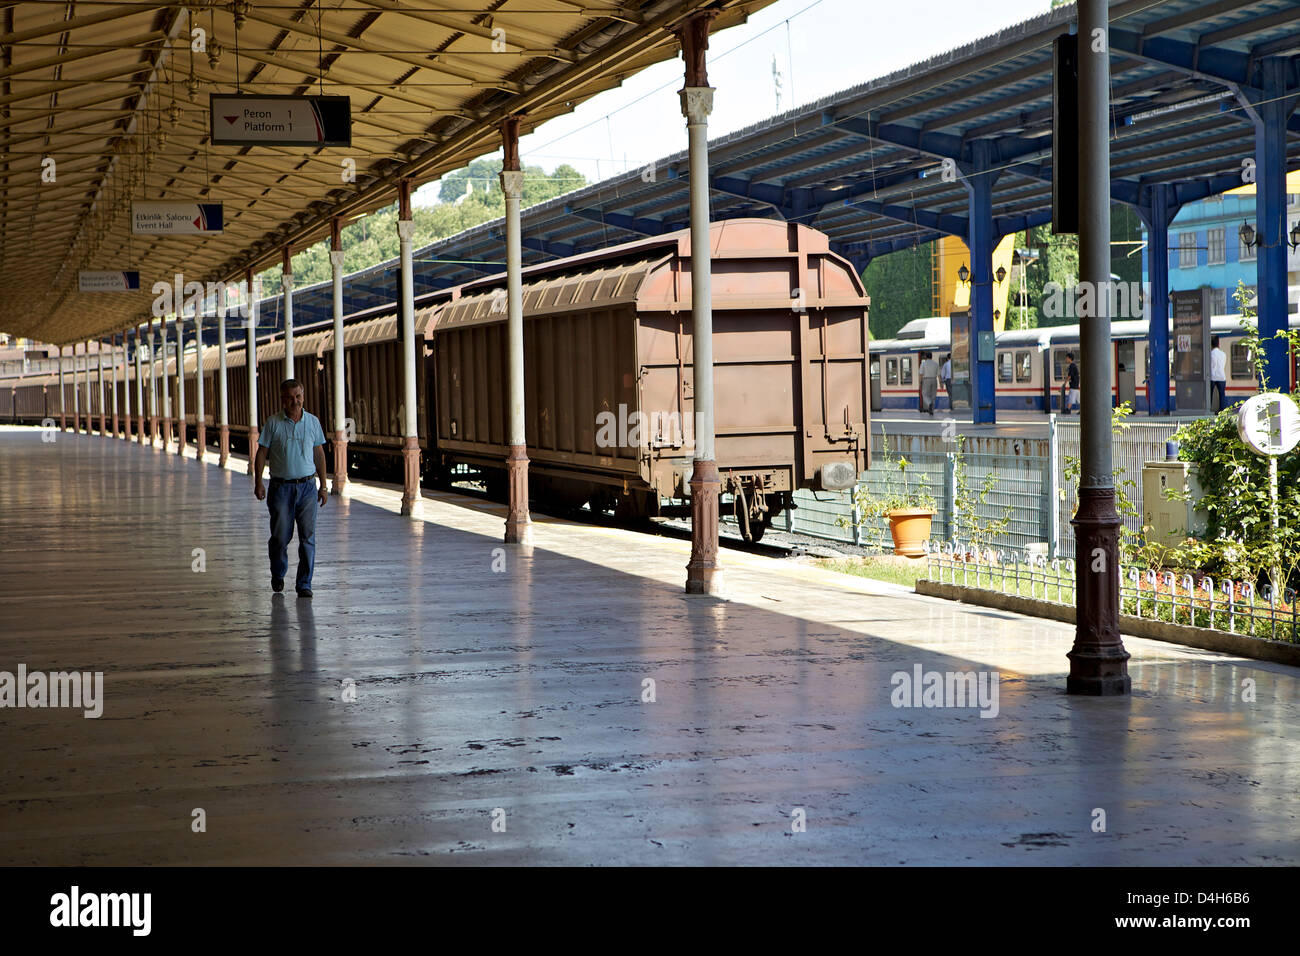 Sirkeci Gar (Central railway) railway station former terminal stop of the Orient Express, Istanbul, Turkey, Durasia - Stock Image